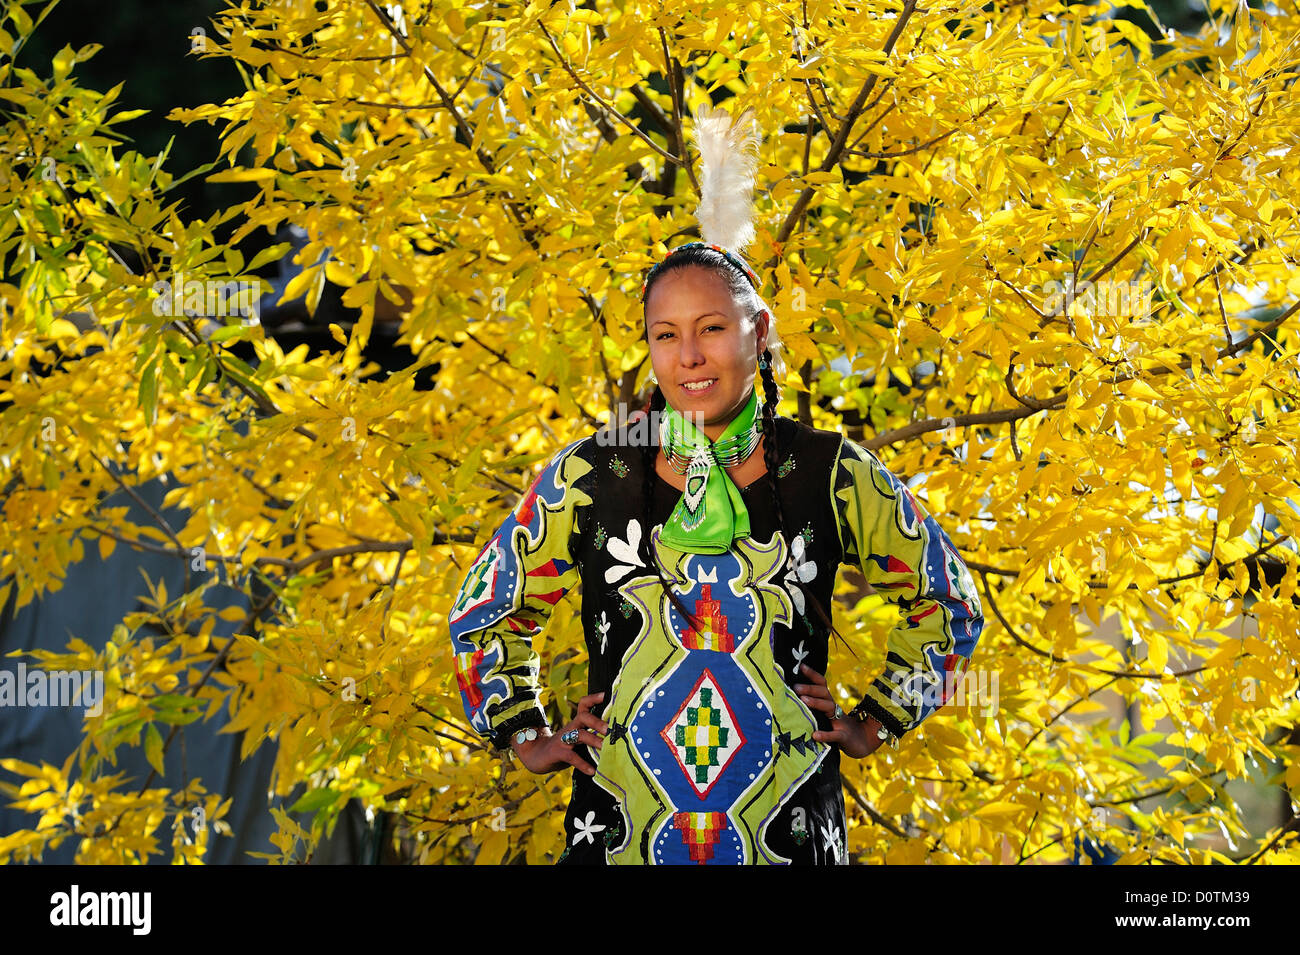 Jasmine Pickner, Oglala, Lakota, Sioux, Rapid City, South Dakota, native indian, indian, costume, feathers, model - Stock Image